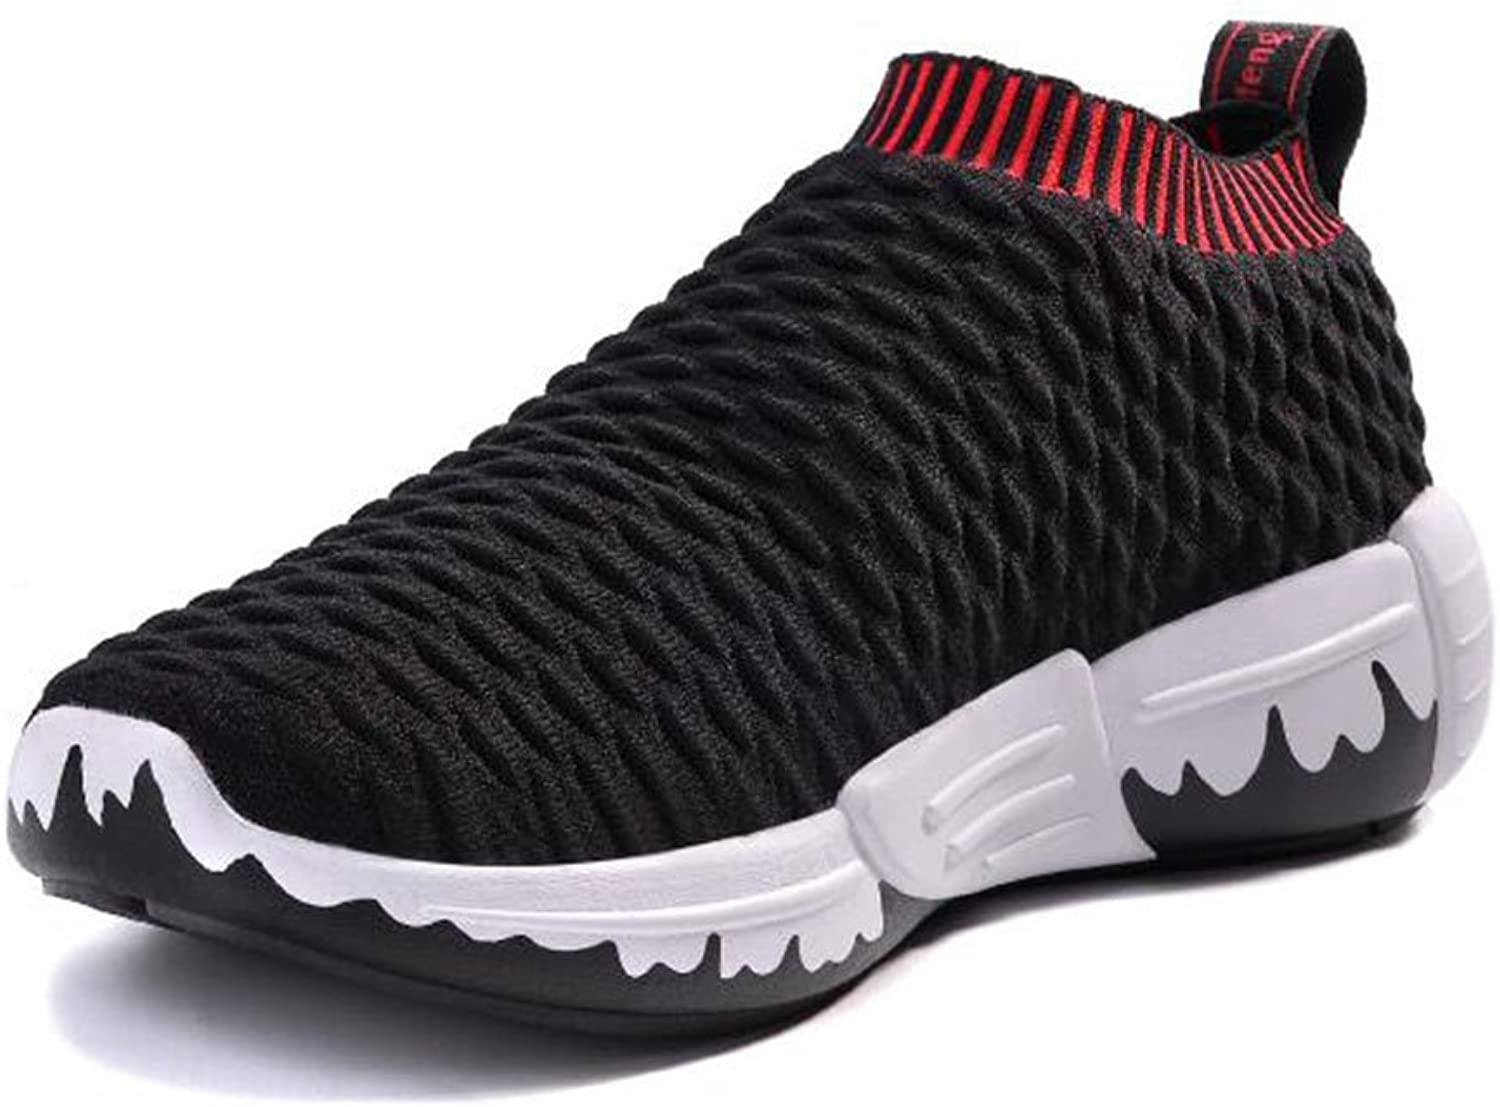 Men women Knit Sneakers Spring Summer Comfort Athletic shoes Walking shoes Couples Low Top Mesh Running shoes Casual shoes (color   Black, Size   43)